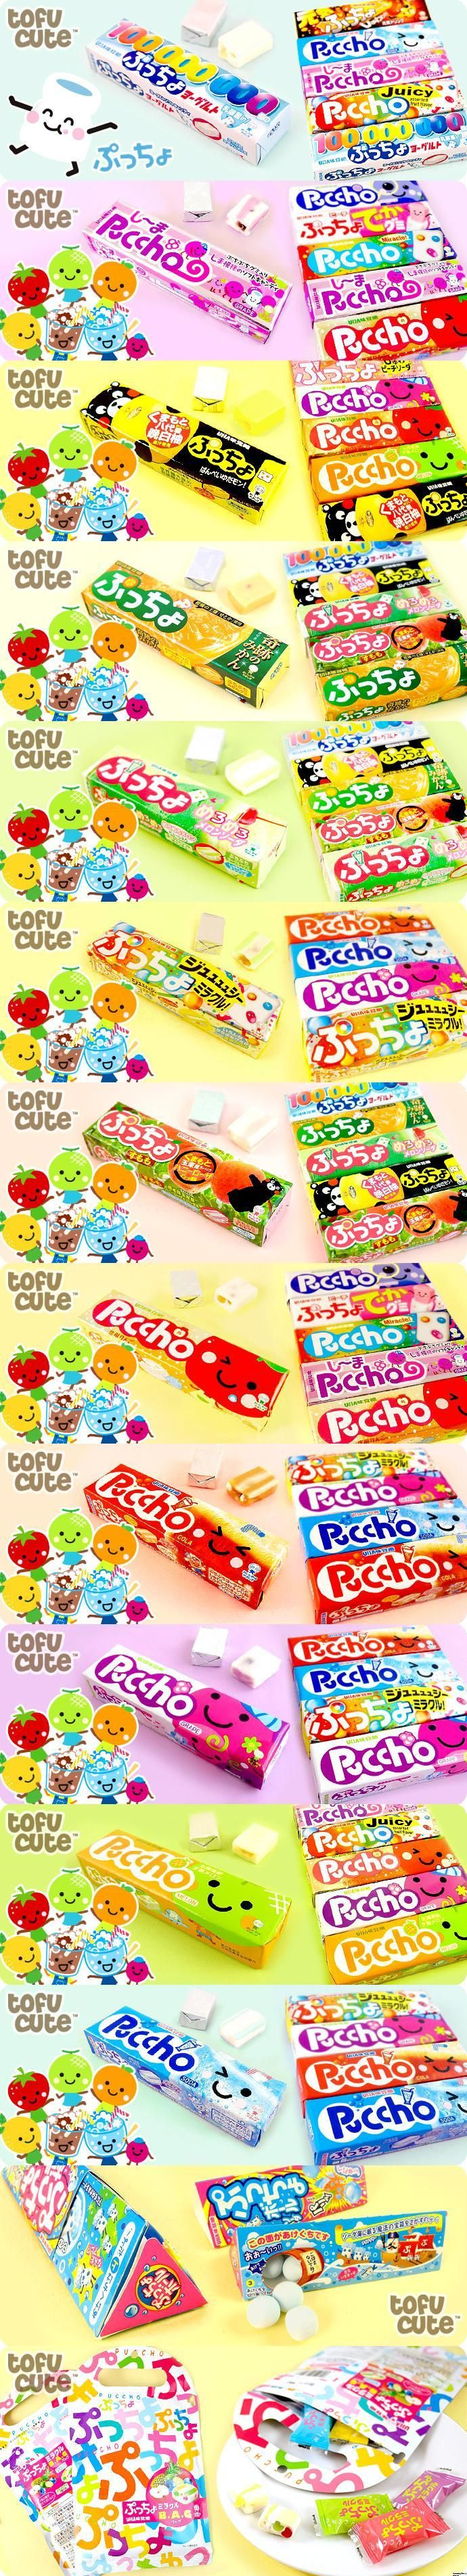 Puccho - Japanese Candy brand cute mascot